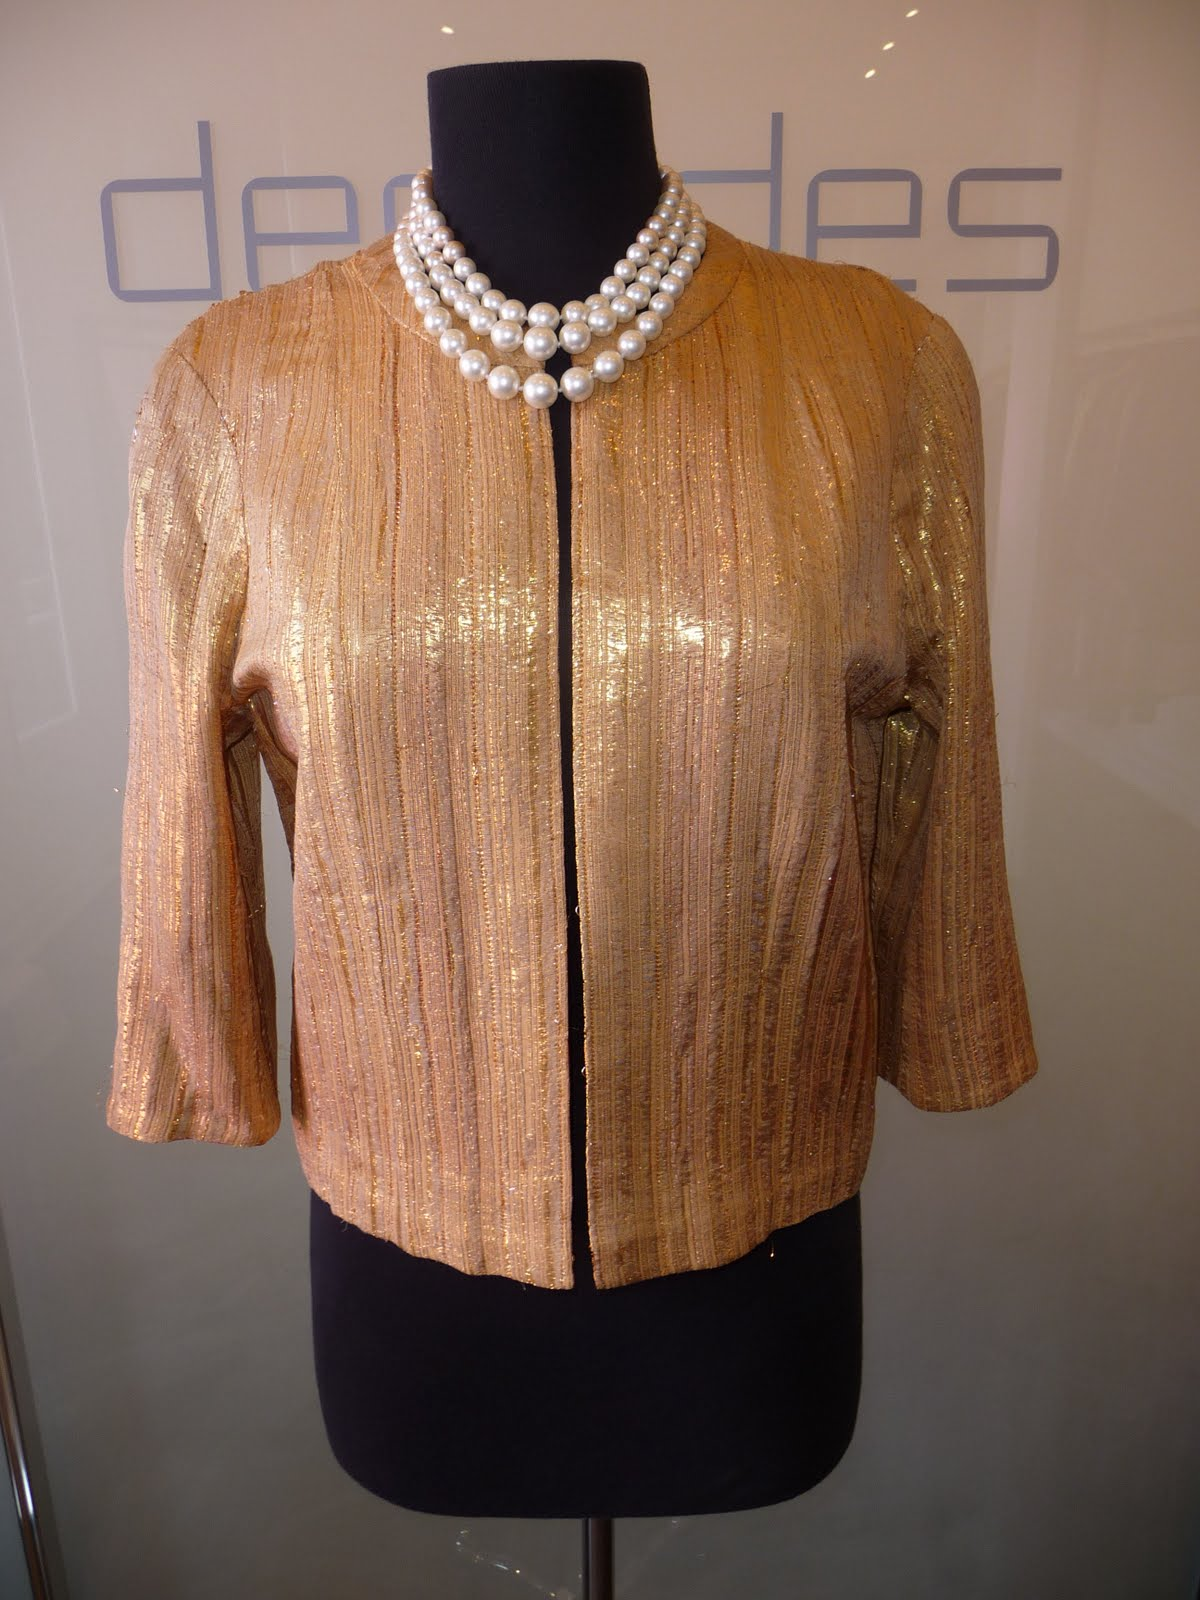 Decades inc november 2009 for Haute couture jacket